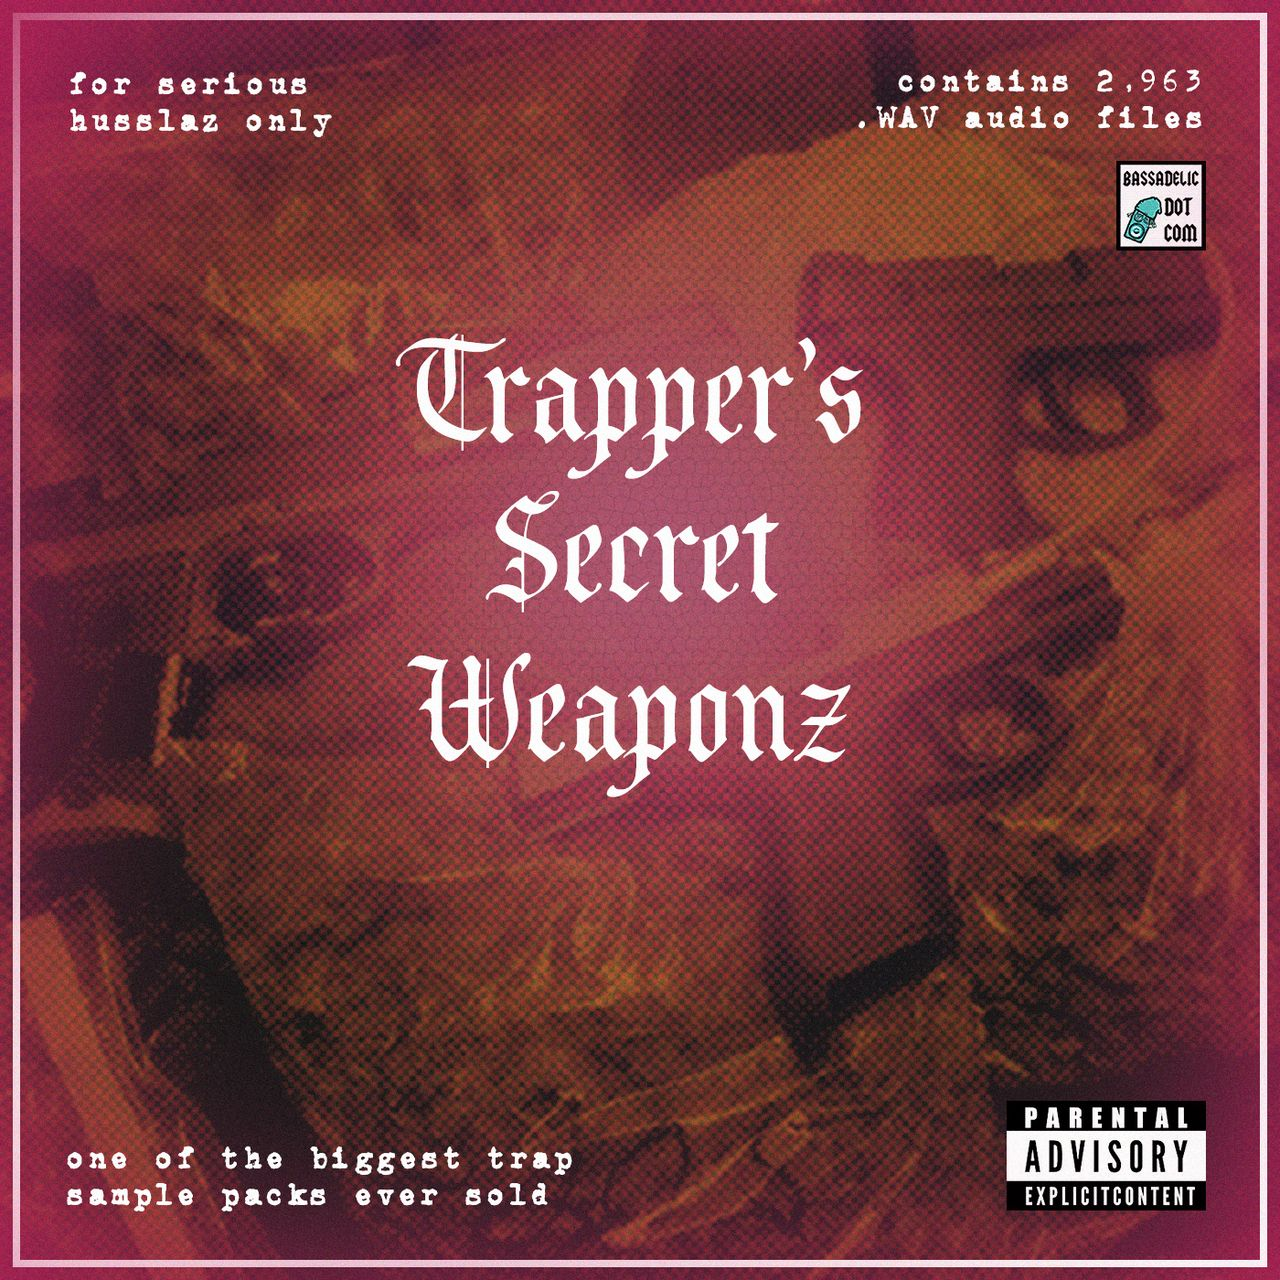 Trapper's Secret Weaponz (2900+ Samples)